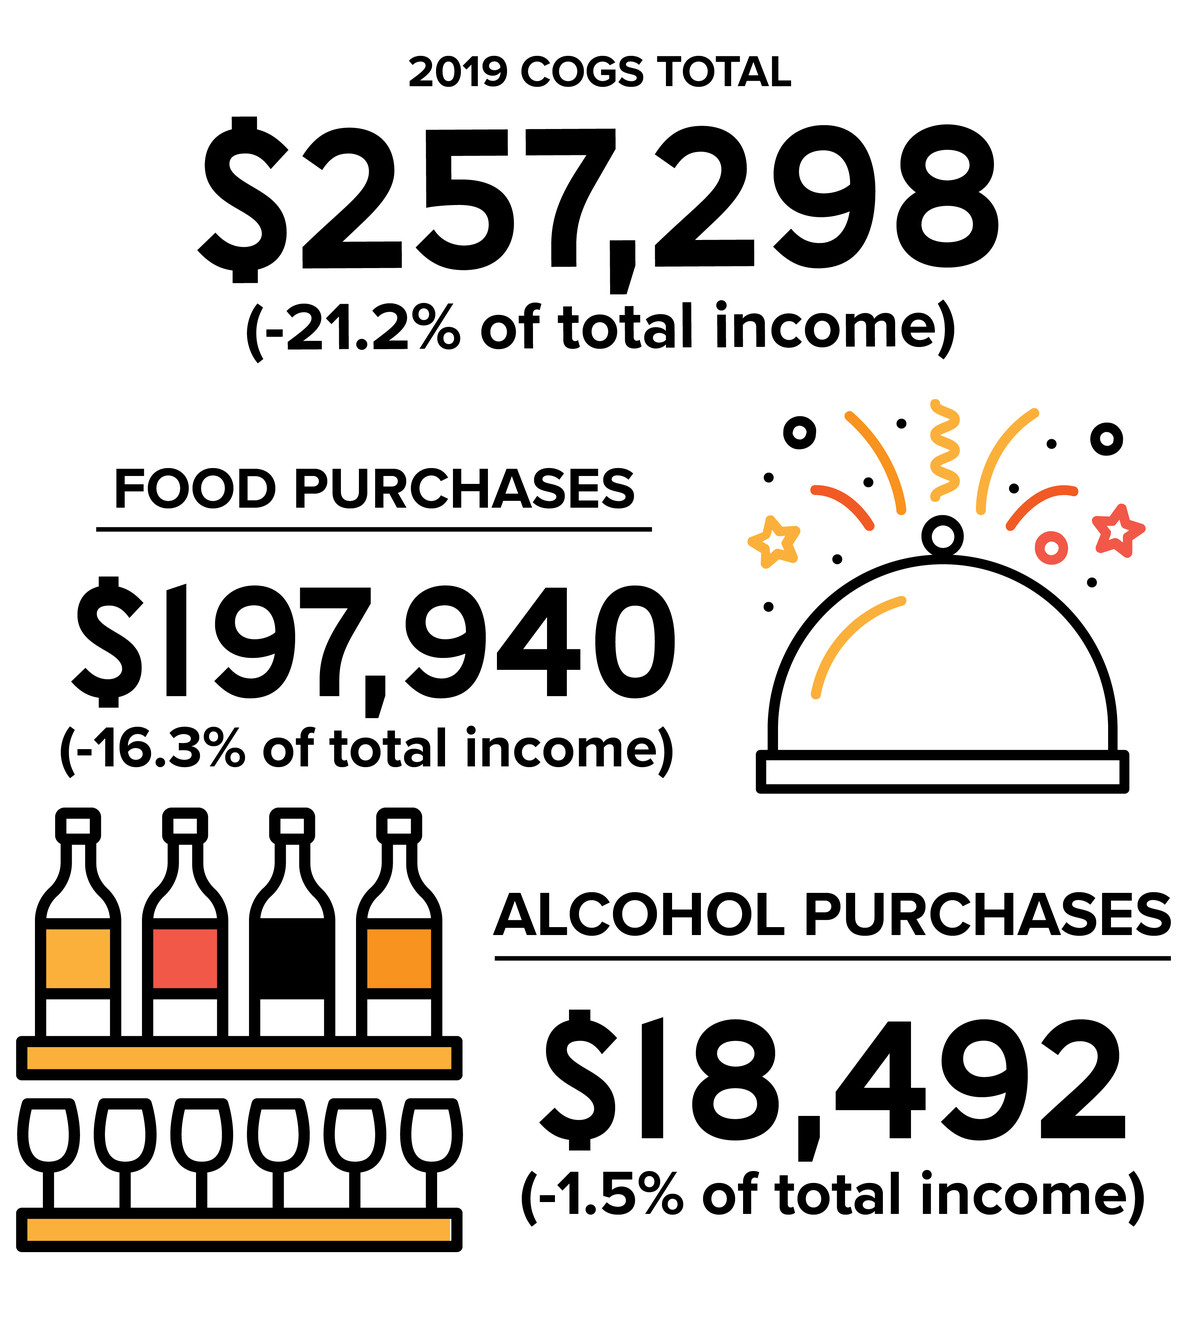 Total Cost of Goods were $257,298 in 2019, representing 21.2% of total income. Broken down, the specific costs were: Food purchases (-16.3% of total income) and alcohol purchases $18,492 (-1.5% of total income).